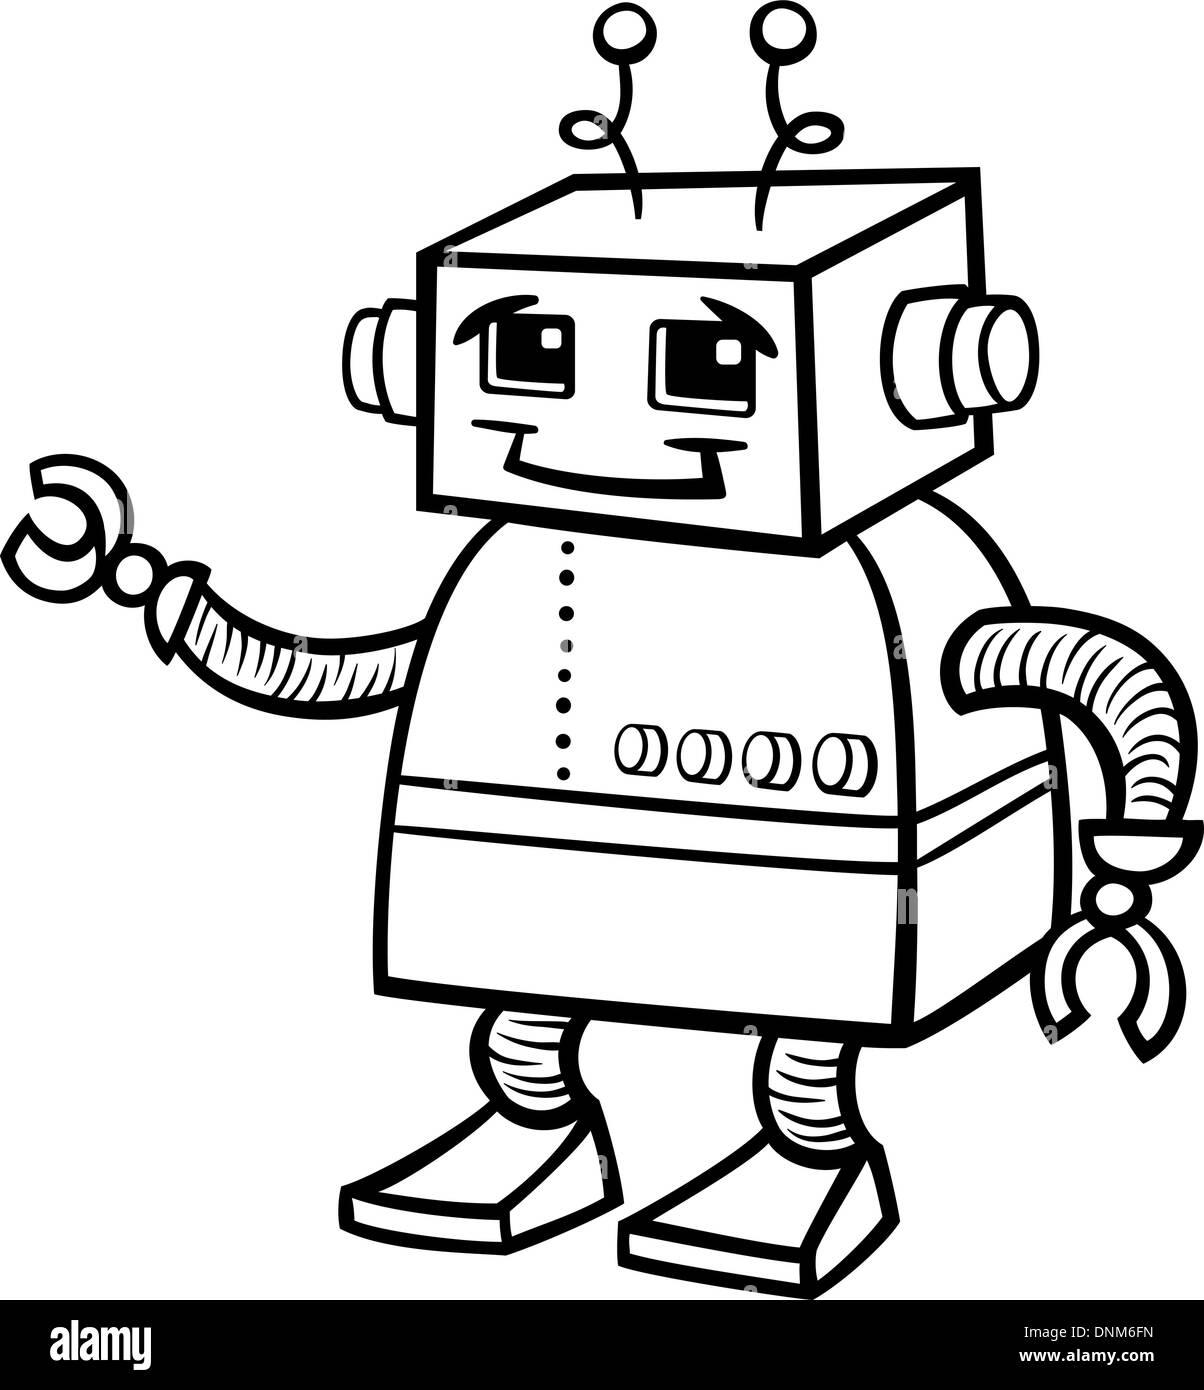 Black And White Cartoon Illustration Of Cute Robot Or Droid For Children To Coloring Book